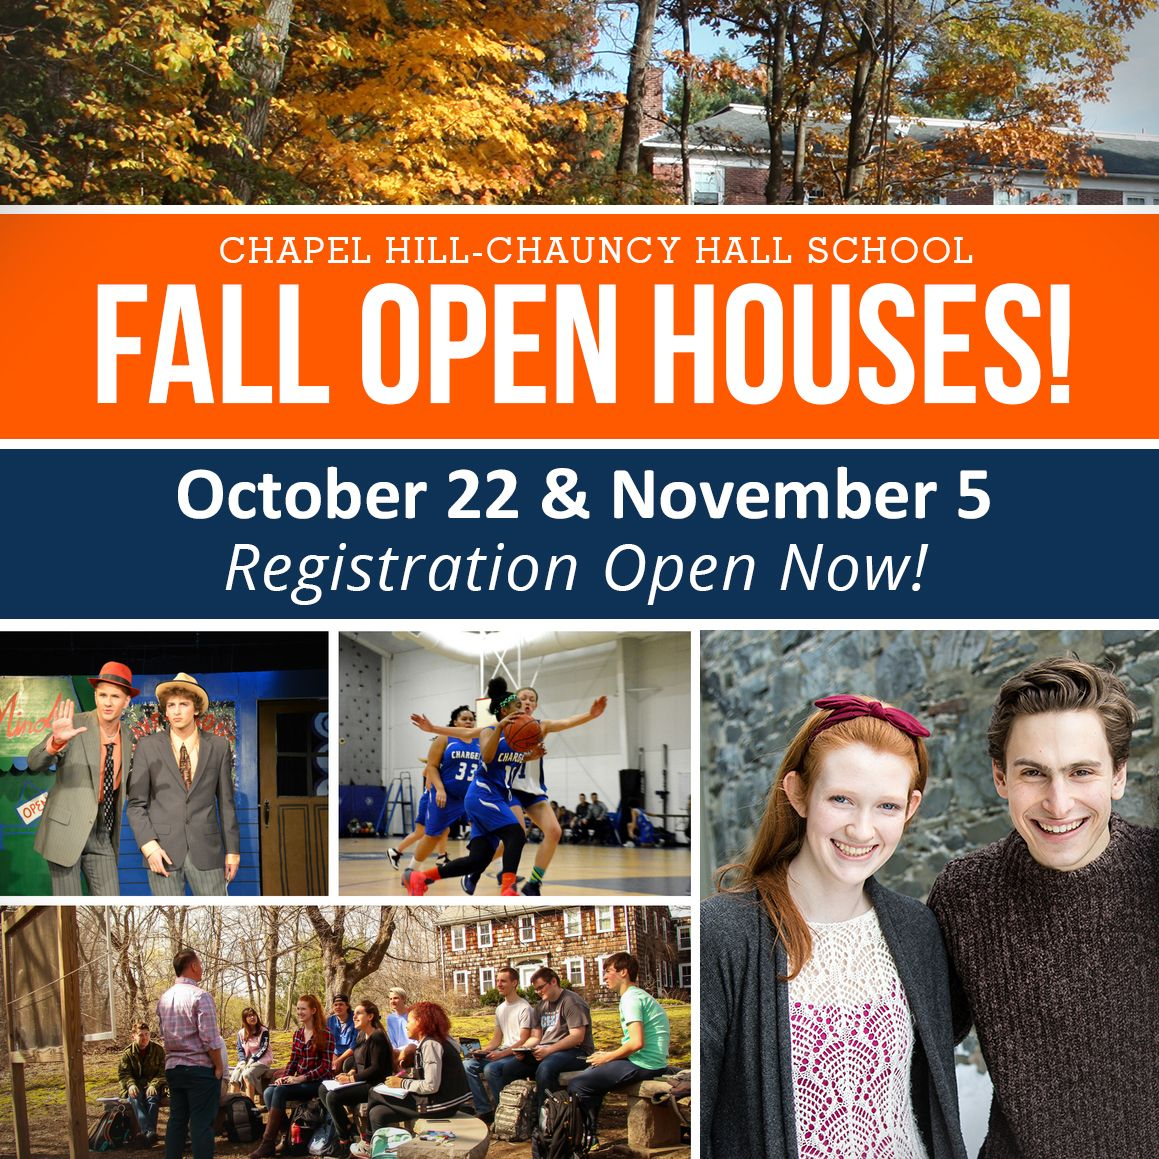 Fall Open Houses